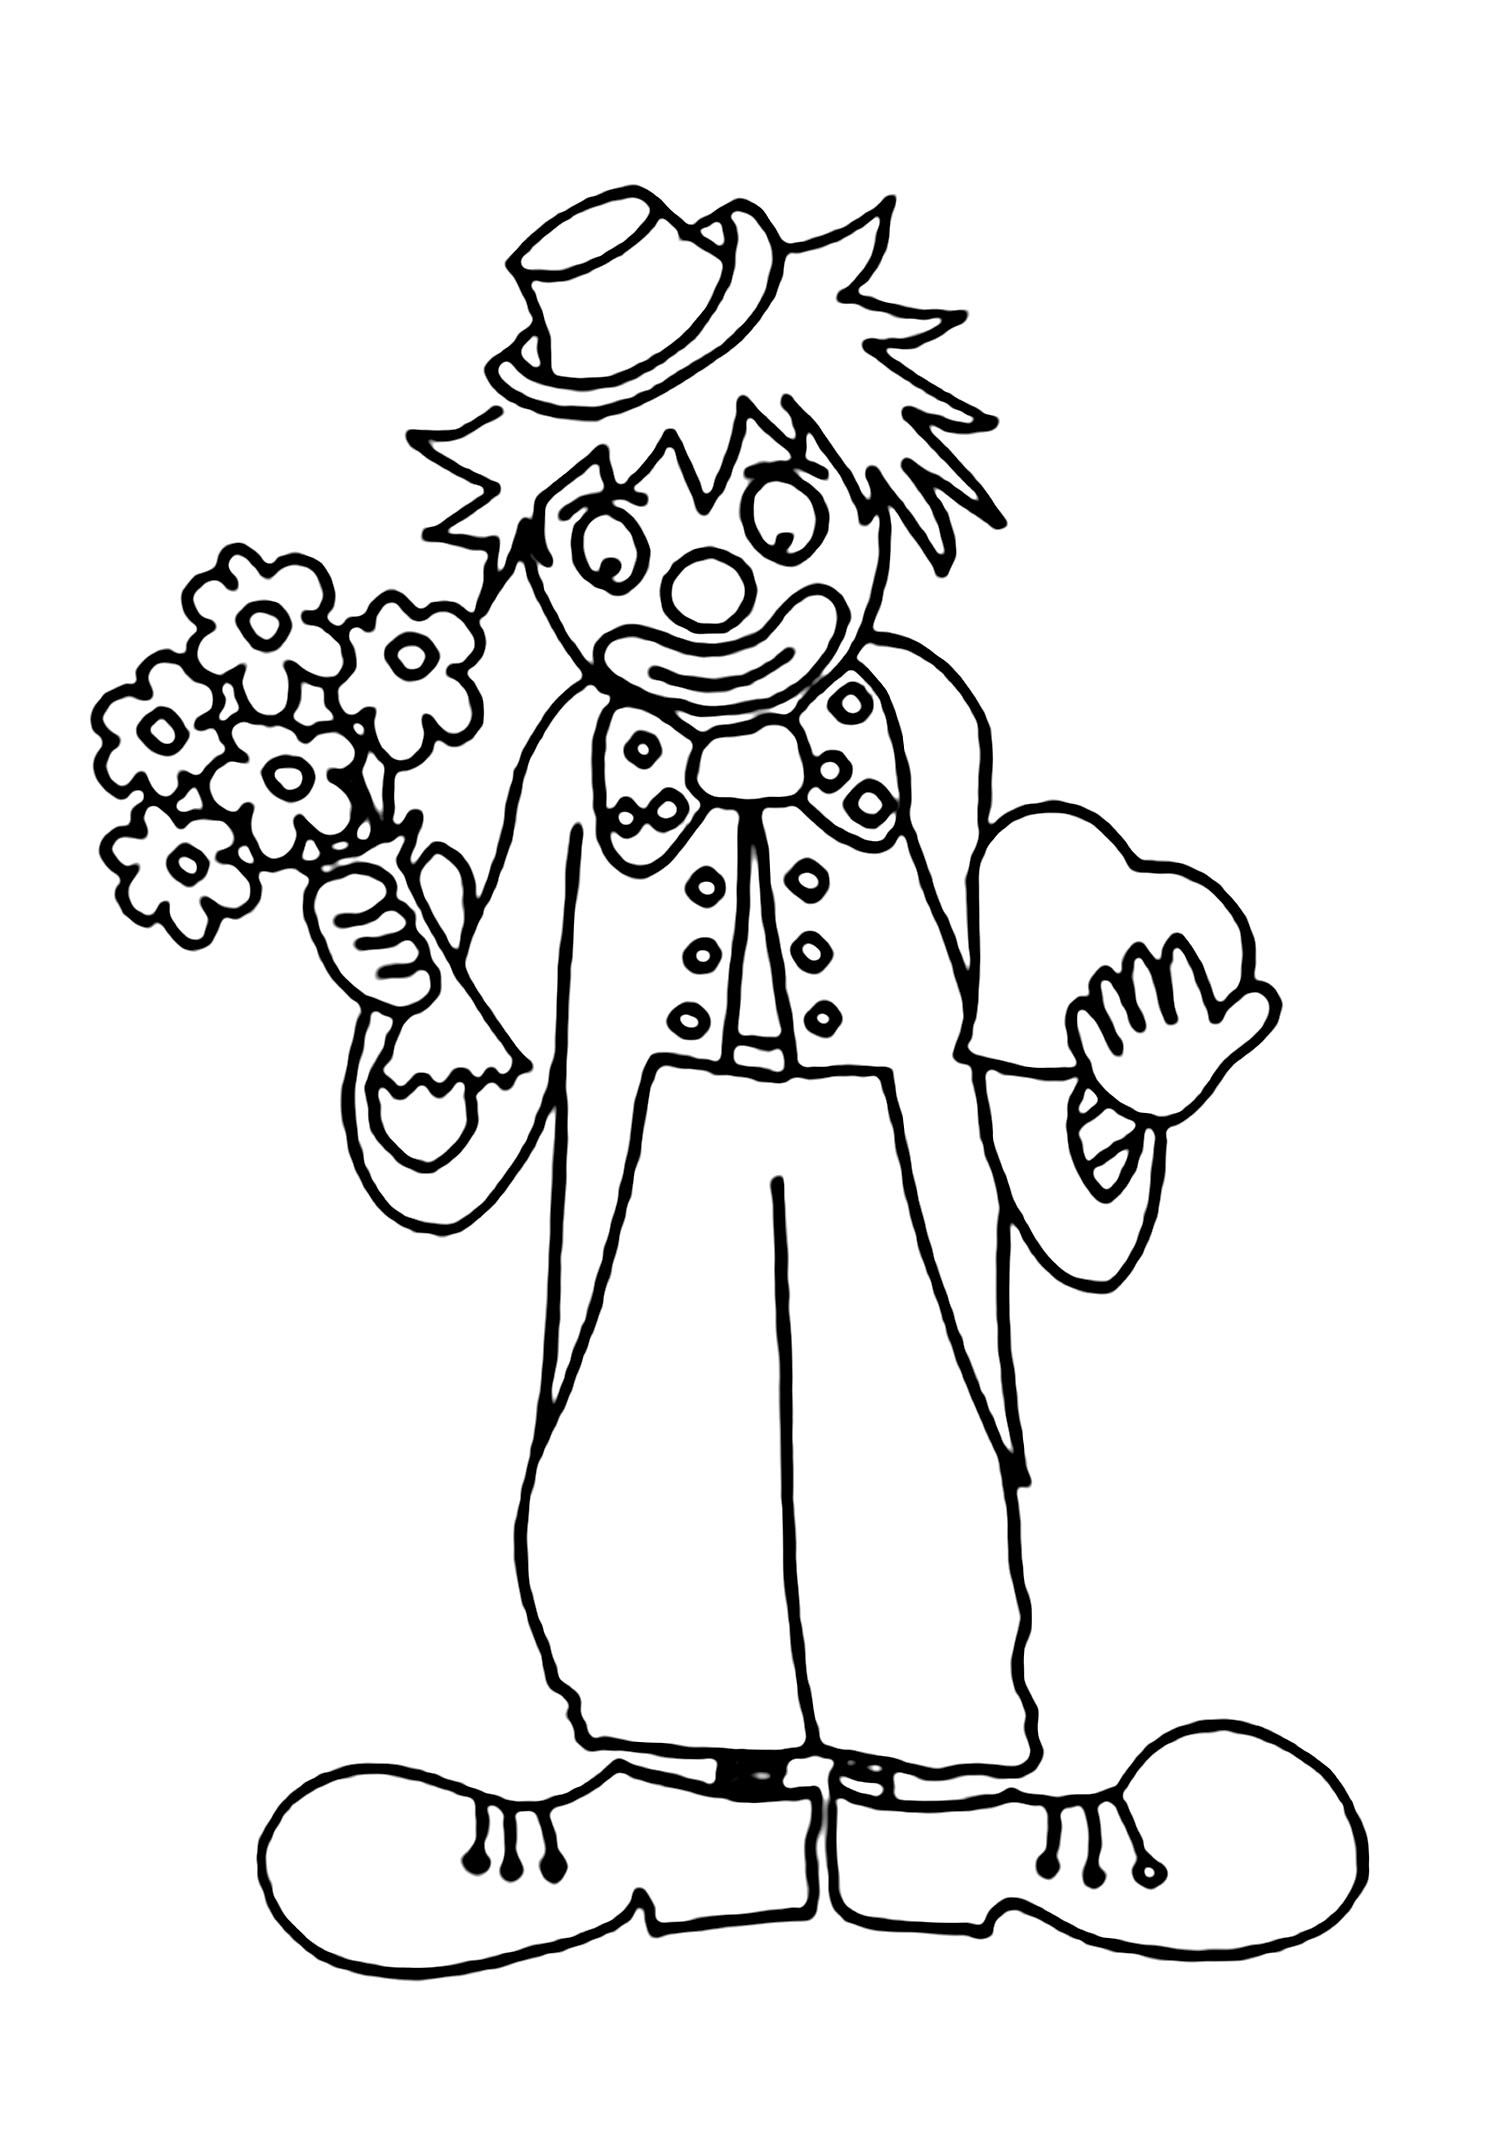 easy clown coloring pages circus to color for kids circus kids coloring pages coloring easy clown pages